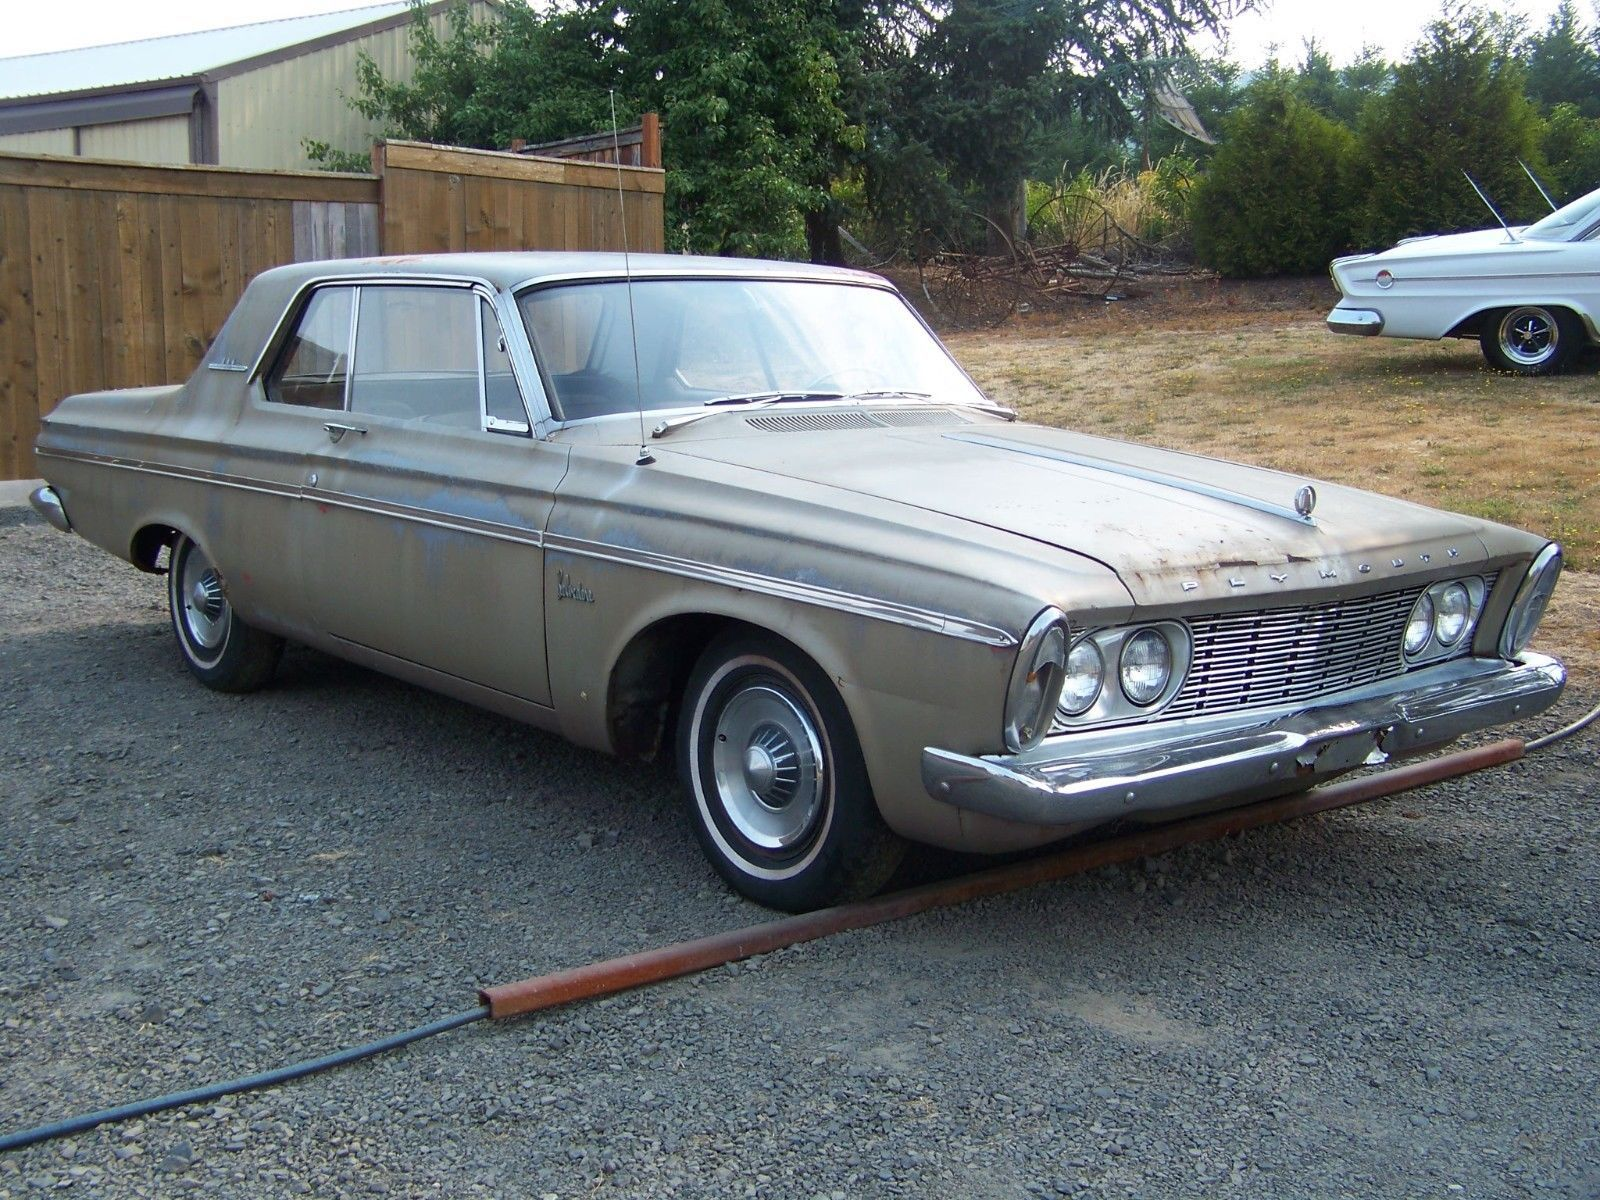 1963 Plymouth Belvedere | Plymouth and Cars